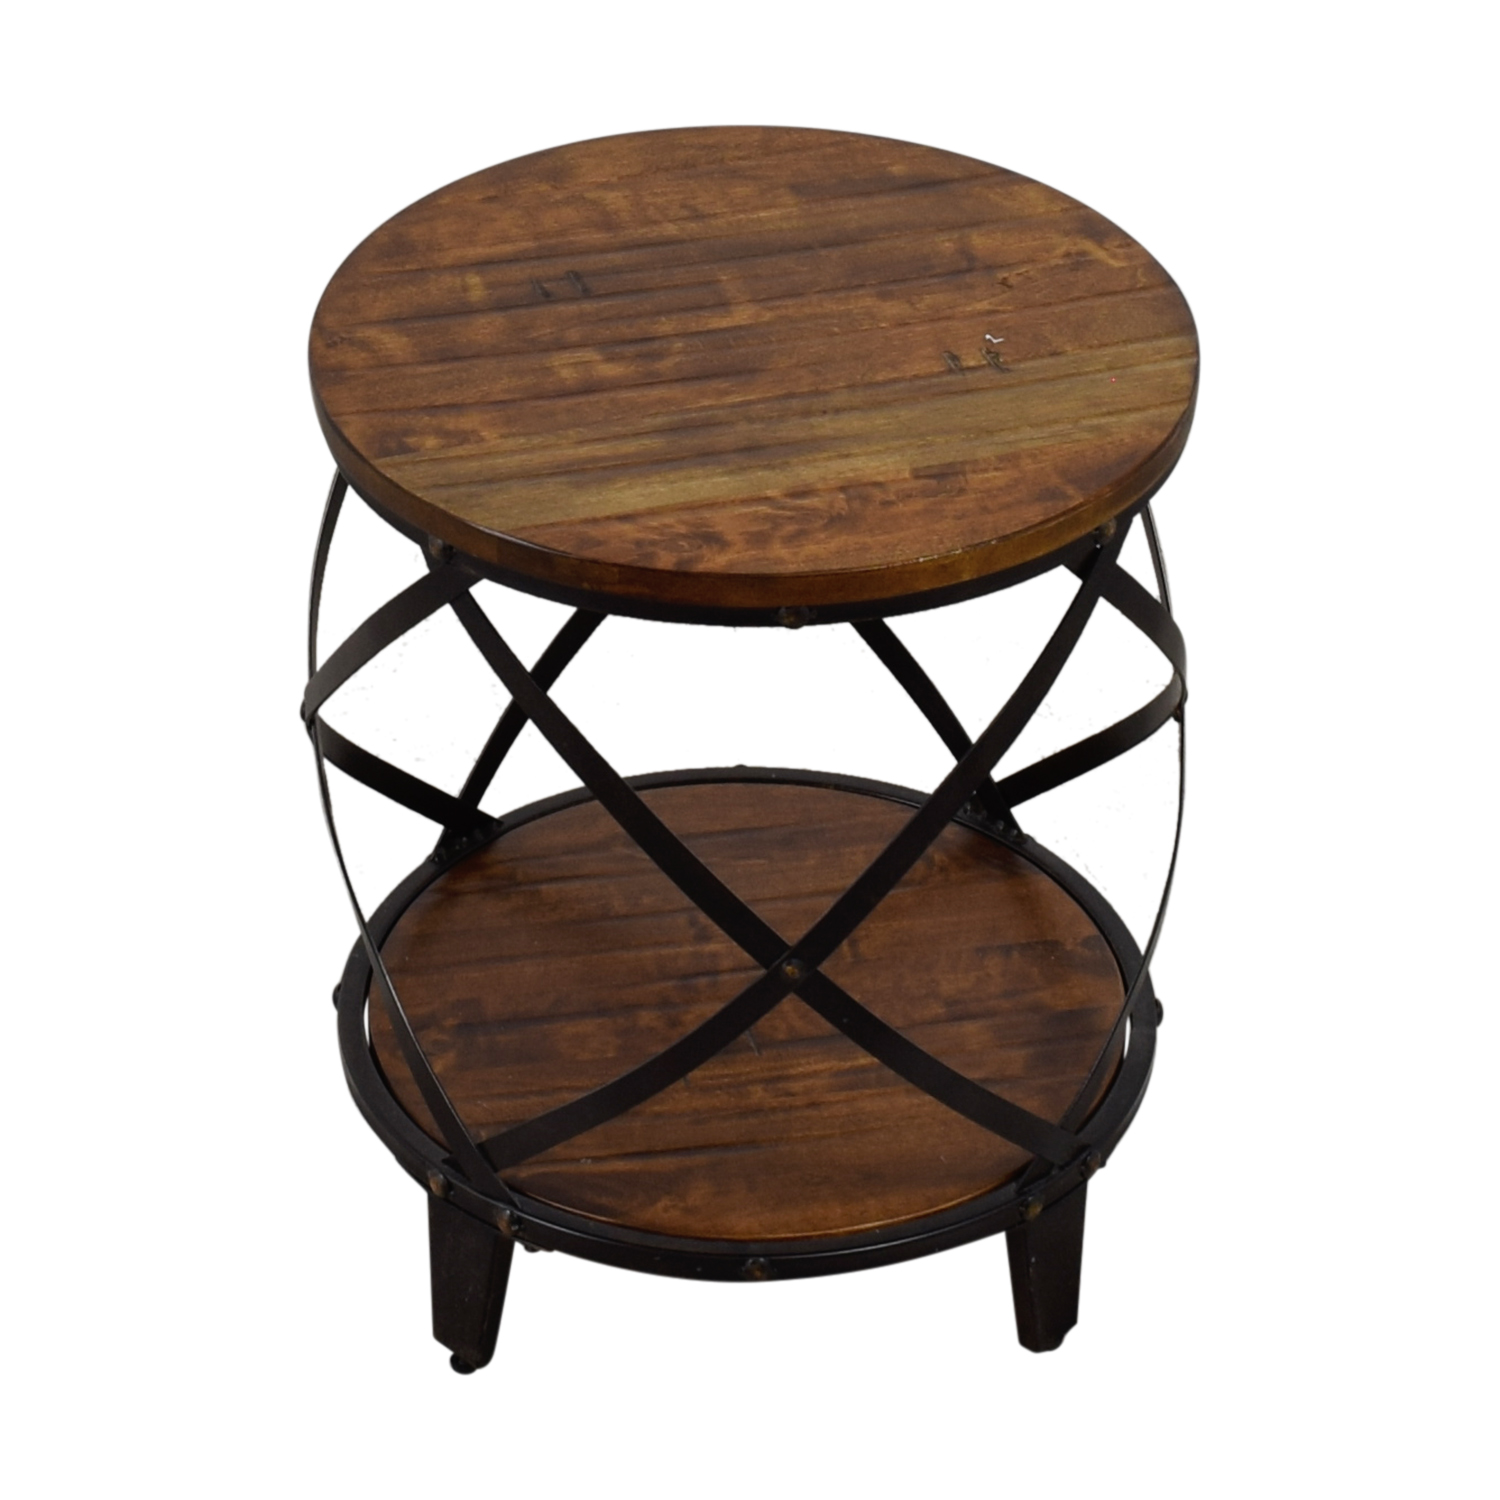 shop Steve Silver Round Wood and Metal End Table Steve Silver End Tables